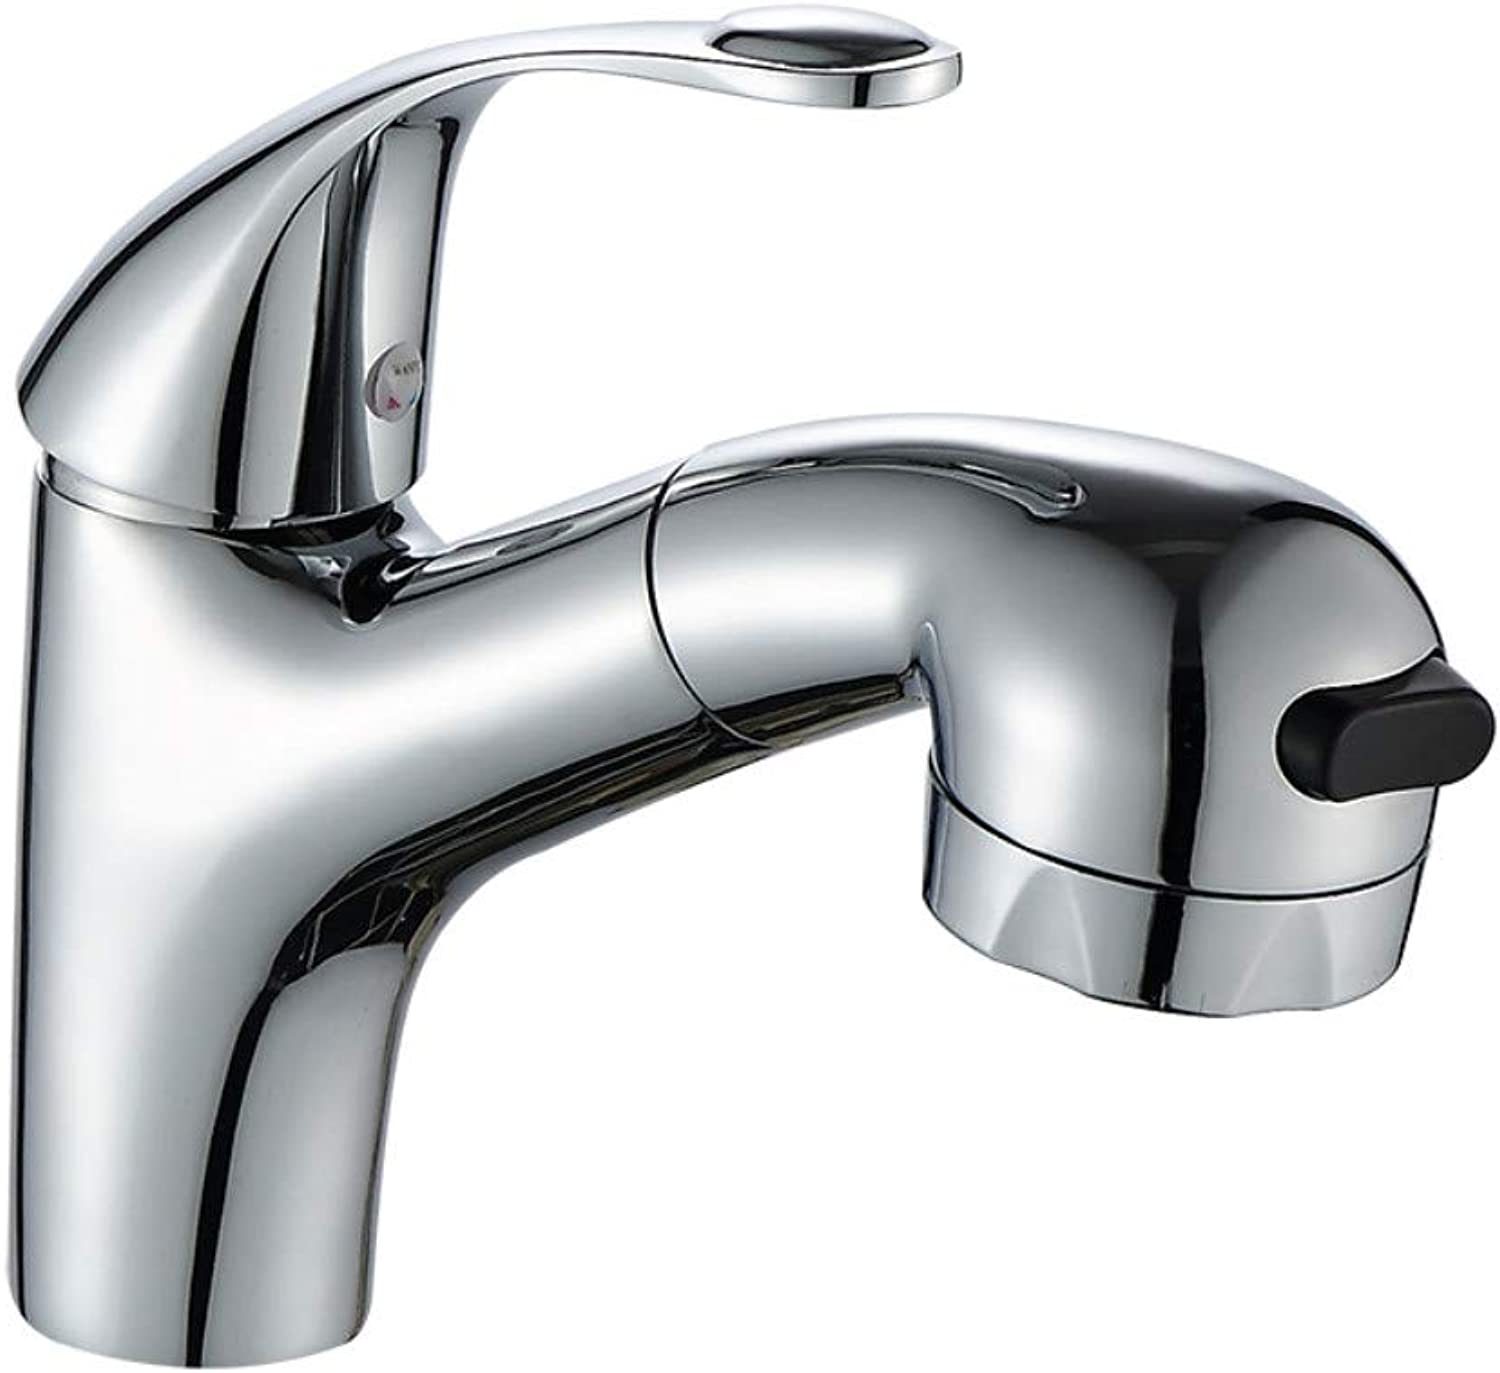 Taps faucet water faucet Basin Faucet basin mexer,multi-Function Shampoo Pumping Nozzle Telescopic Hot And Cold Water Faucet